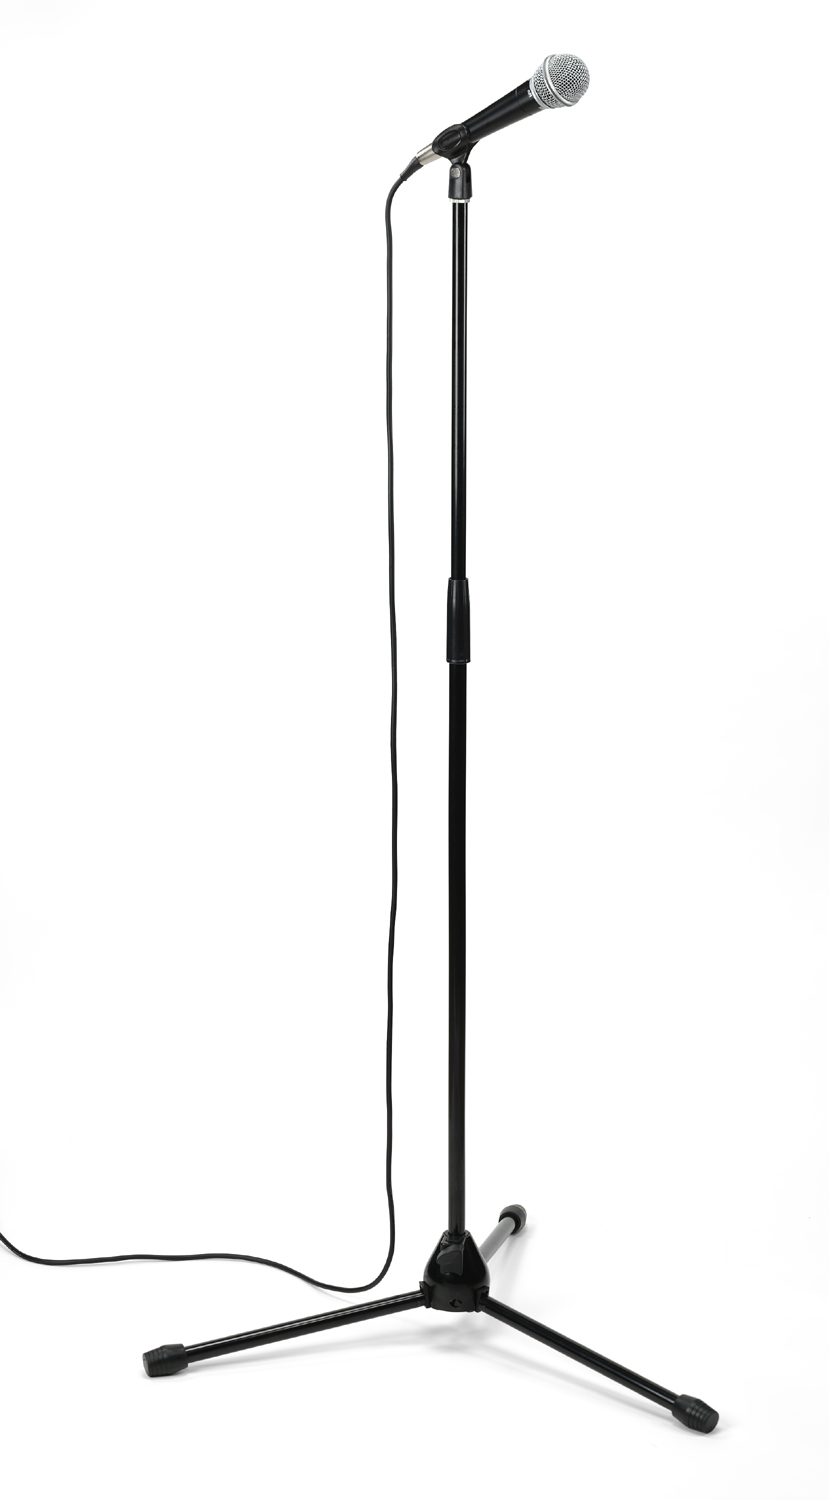 Microphone stand clipart free clipart transparent download Microphone Stand Clip Art | Clipart Panda - Free Clipart Images clipart transparent download